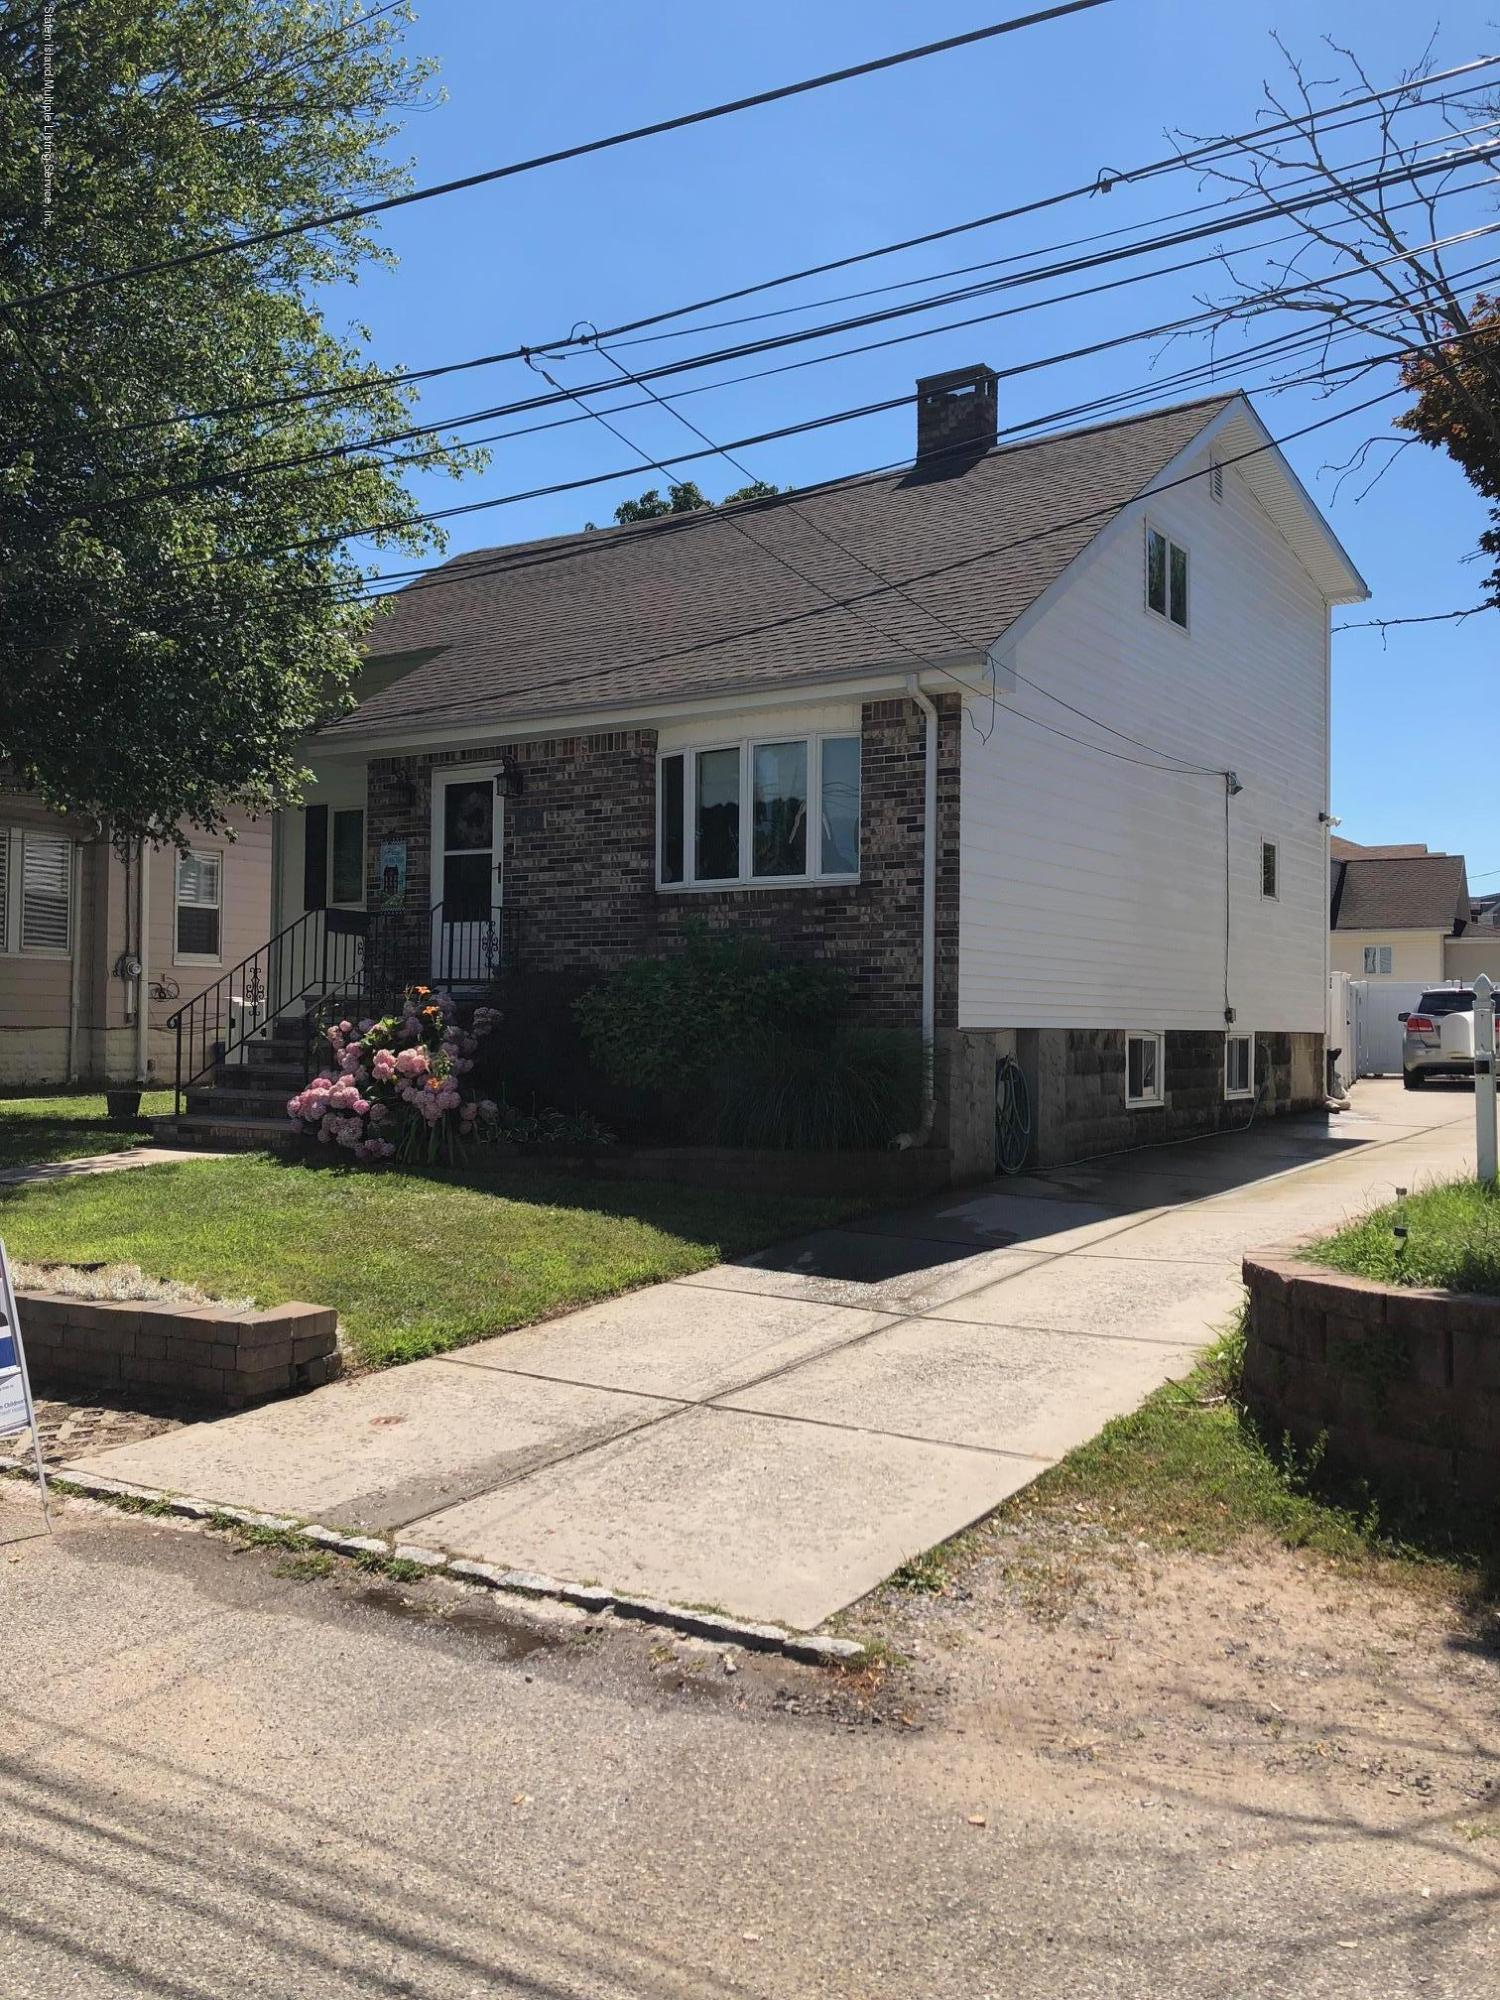 Single Family - Detached 362 Brehaut Avenue  Staten Island, NY 10307, MLS-1120848-3